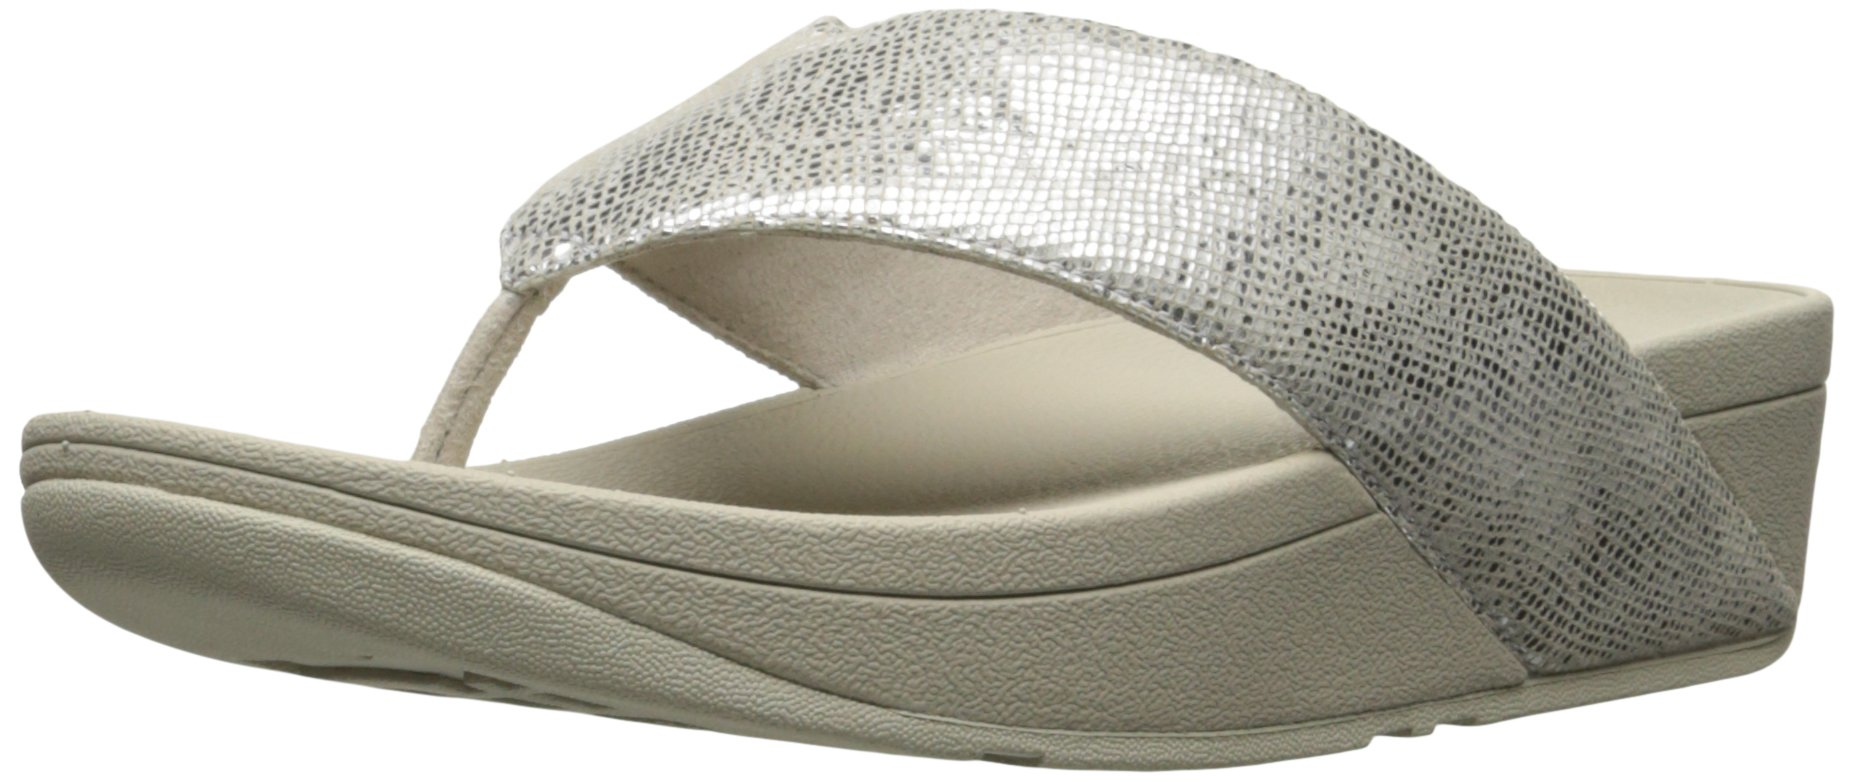 FitFlop Women's Swoop Toe Thong Flip Flop, Silver, 8 M US